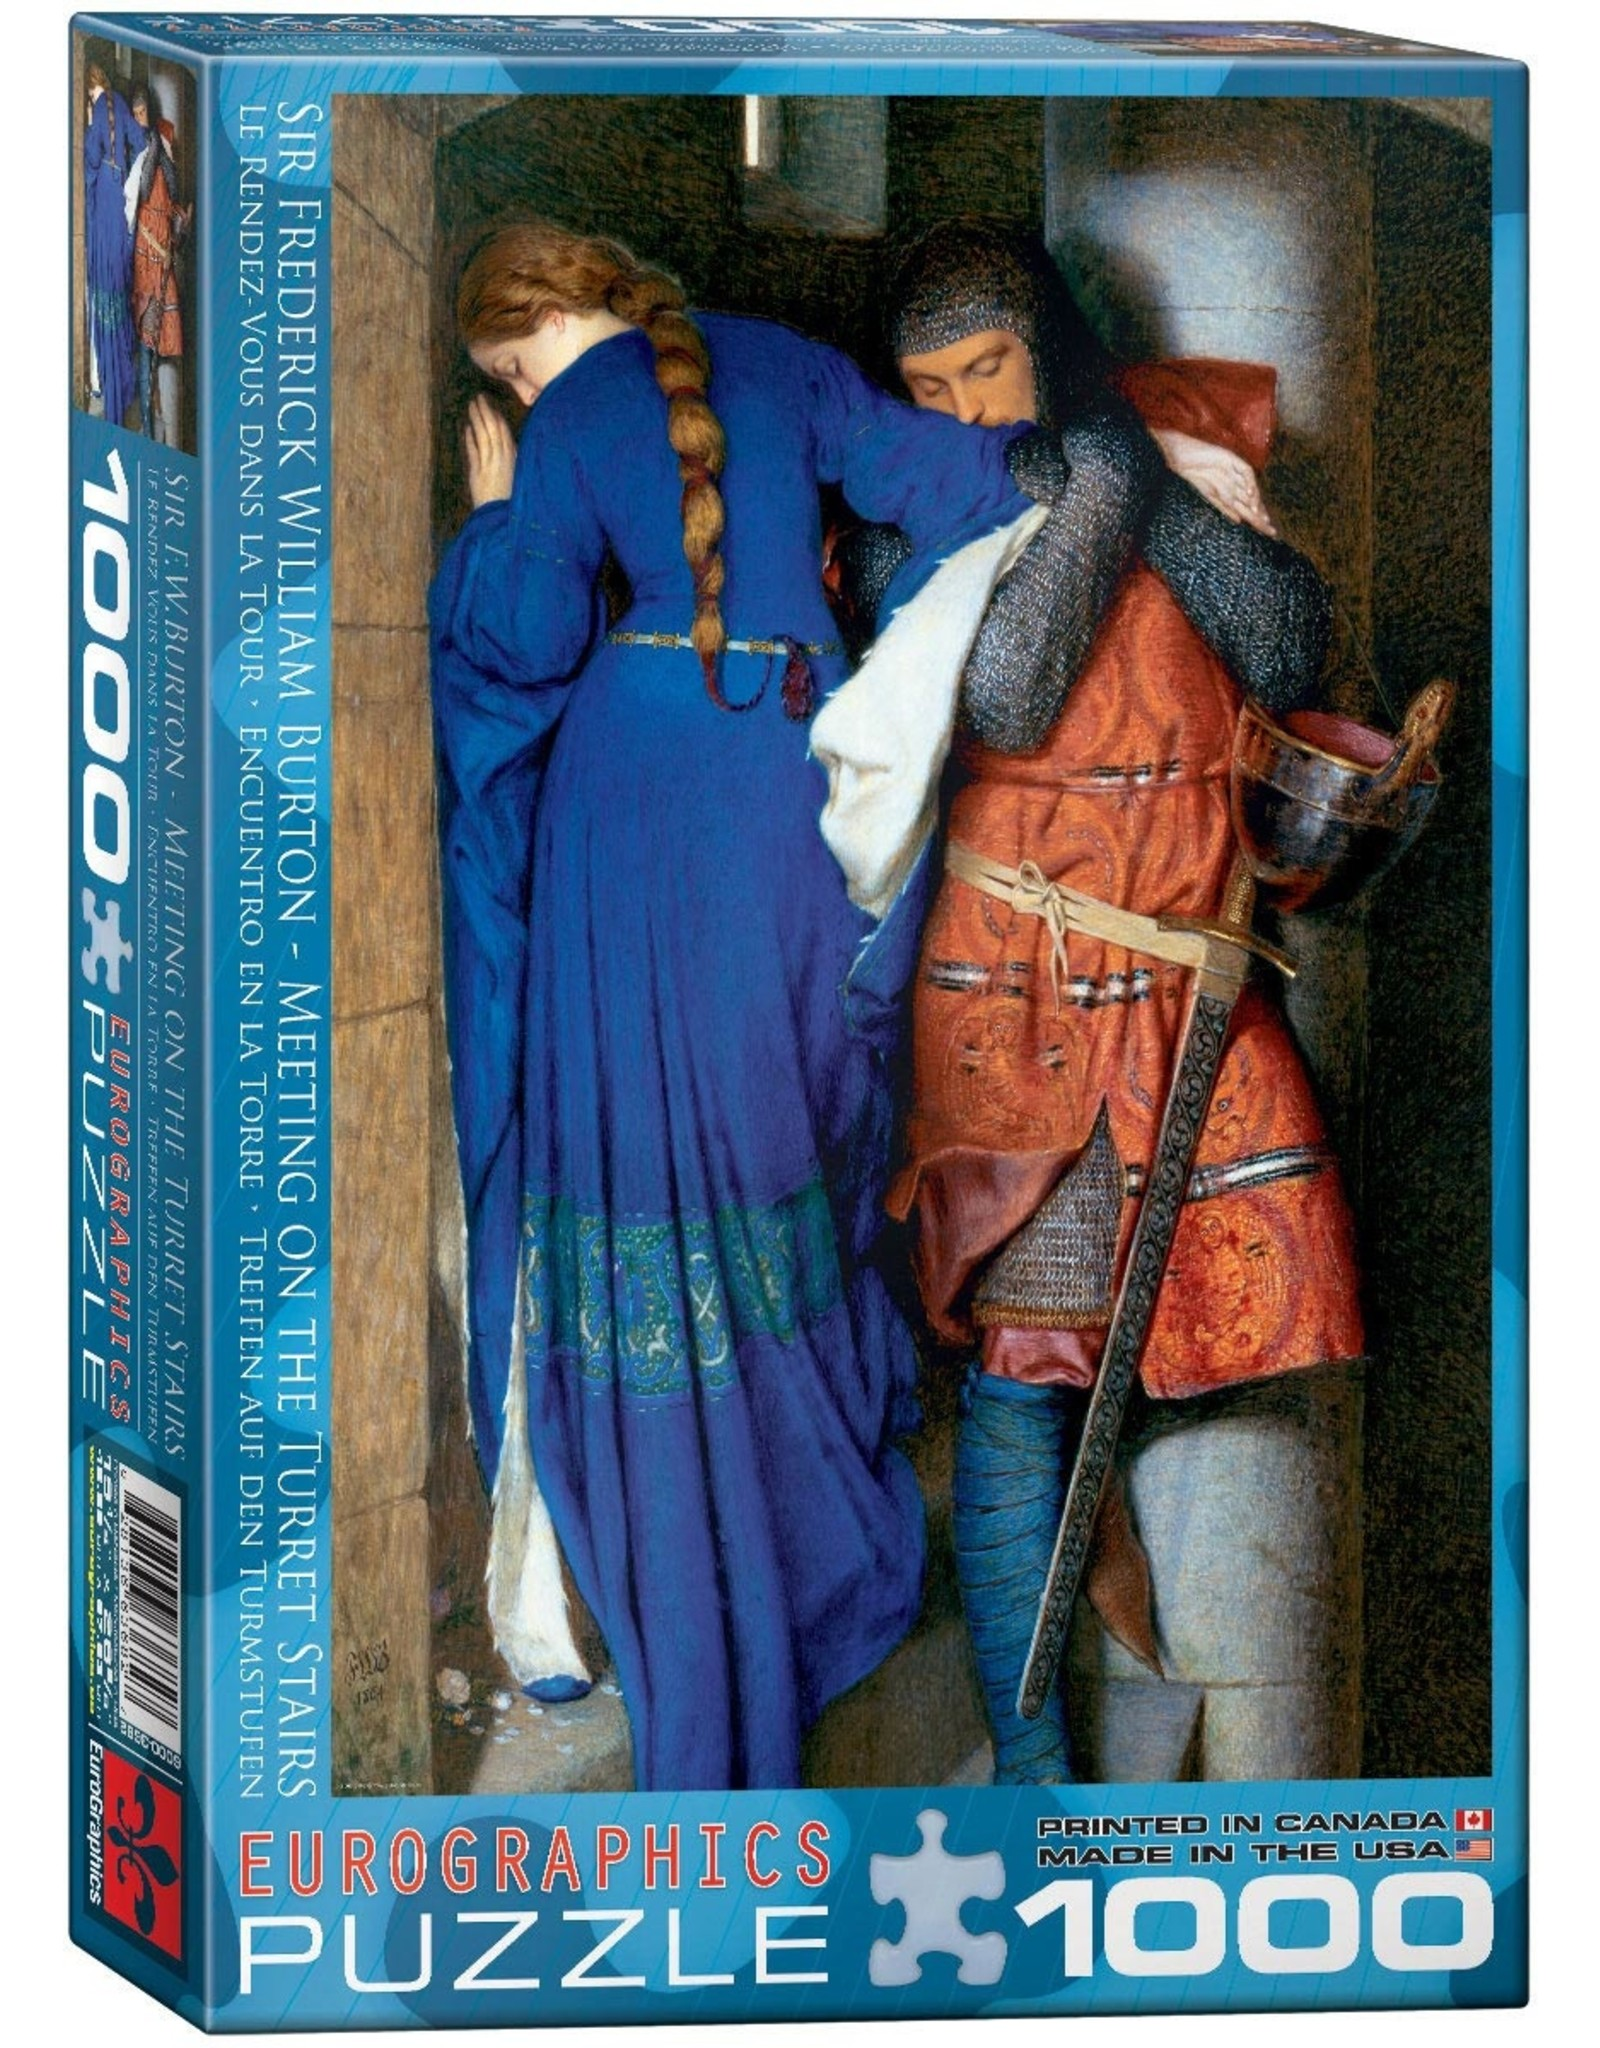 SIR FREDERICK WILLIAM BURTON MEETING ON THE TURRET STAIRS1000 PIECE PUZZLE